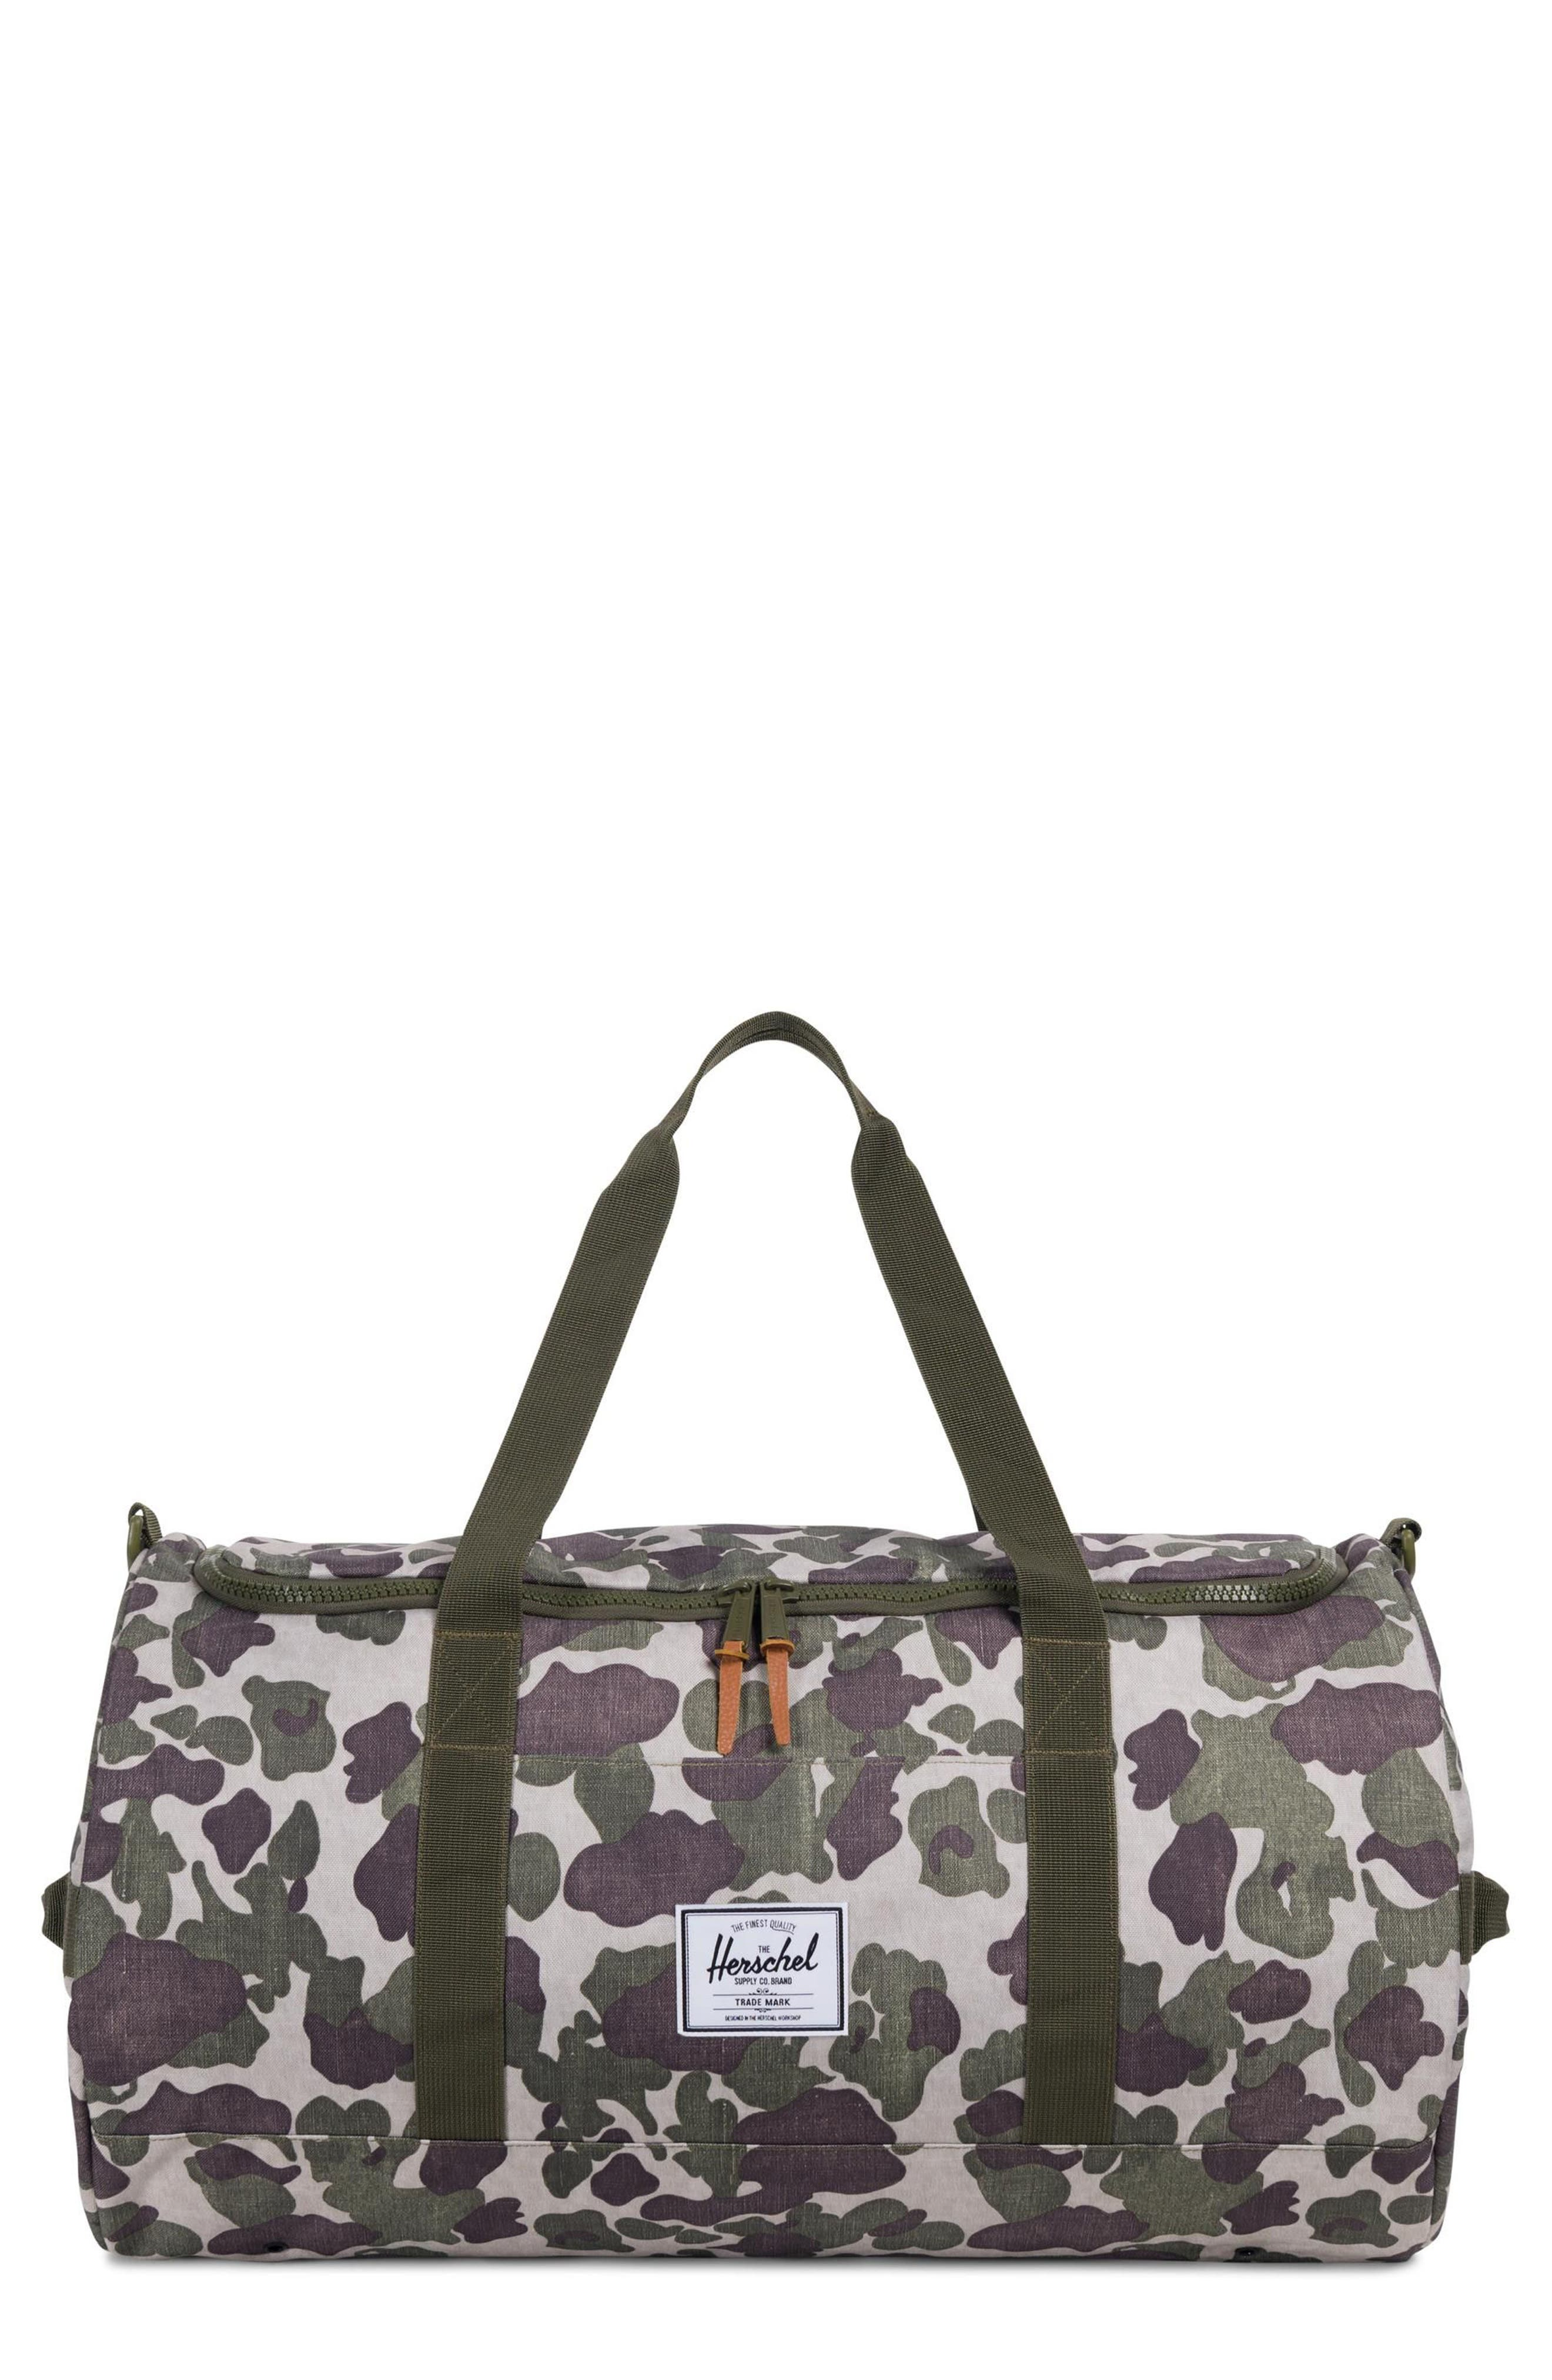 Sutton Duffel Bag,                             Main thumbnail 1, color,                             310